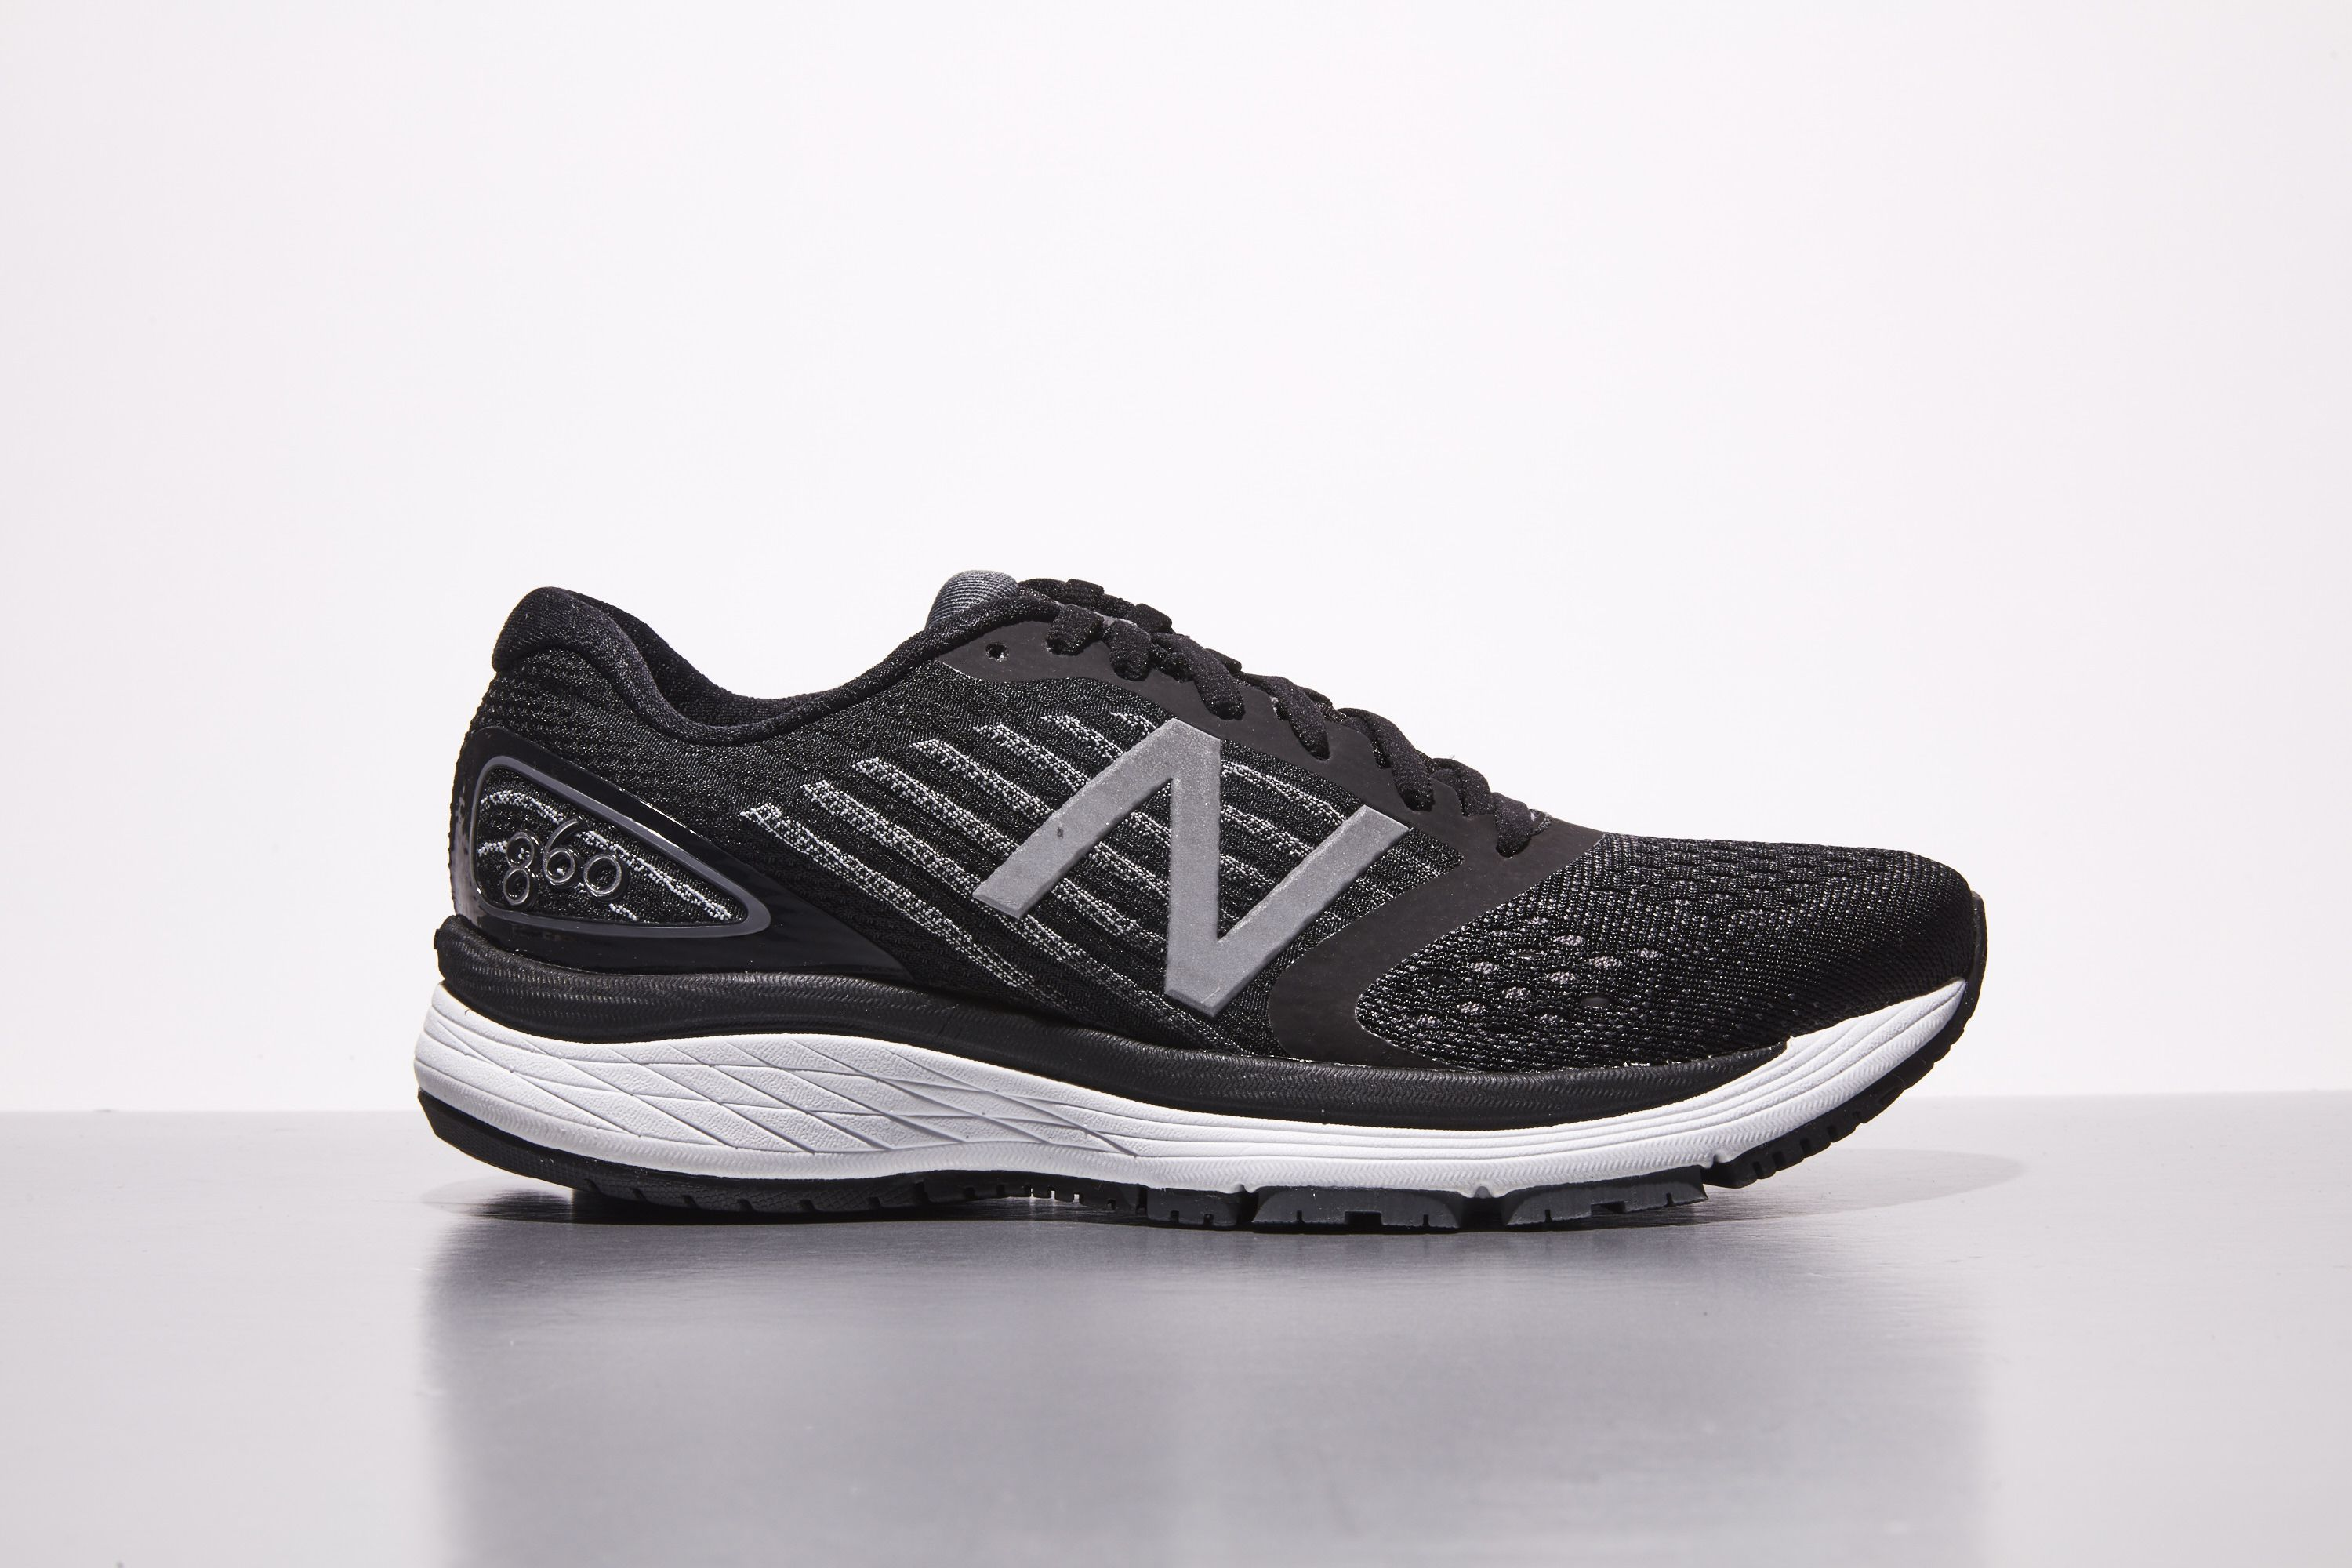 new style b856e 514de Best New Balance Running Shoes   New Balance Shoe Reviews 2019